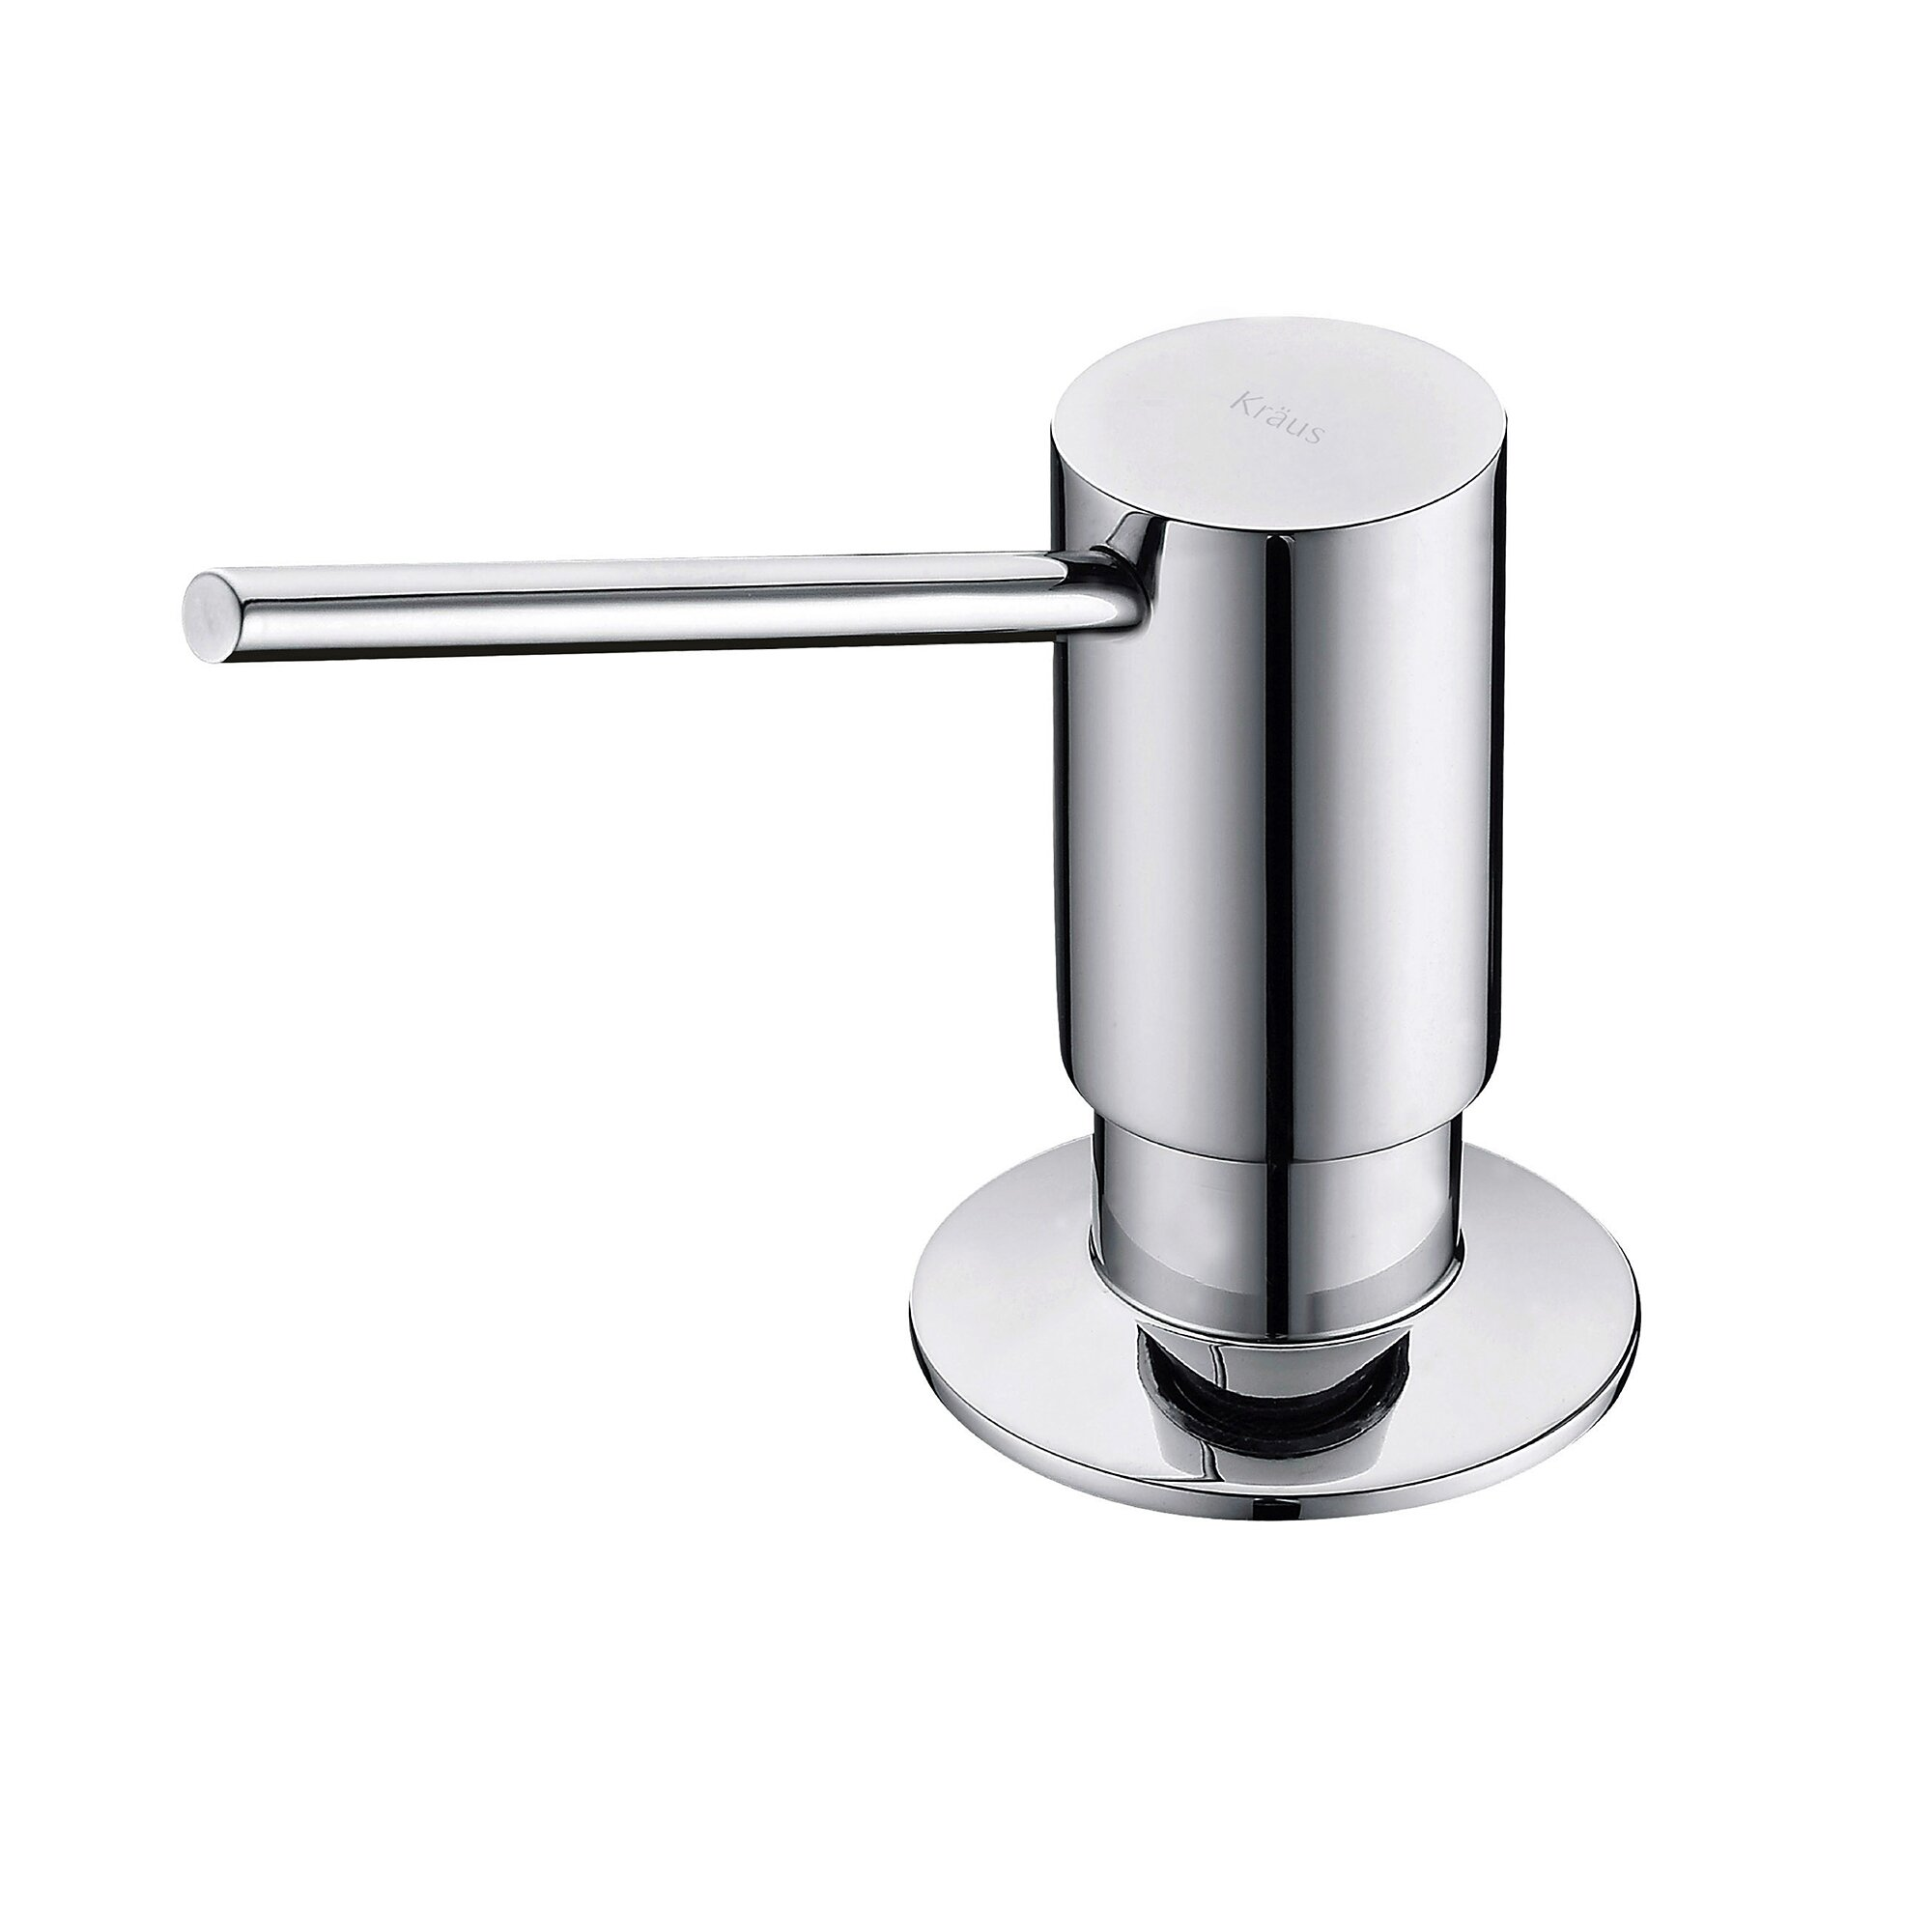 Kraus Faucets Reviews : Kraus Oletto Commercial Style Kitchen Faucet w Bar/Prep Faucet with ...